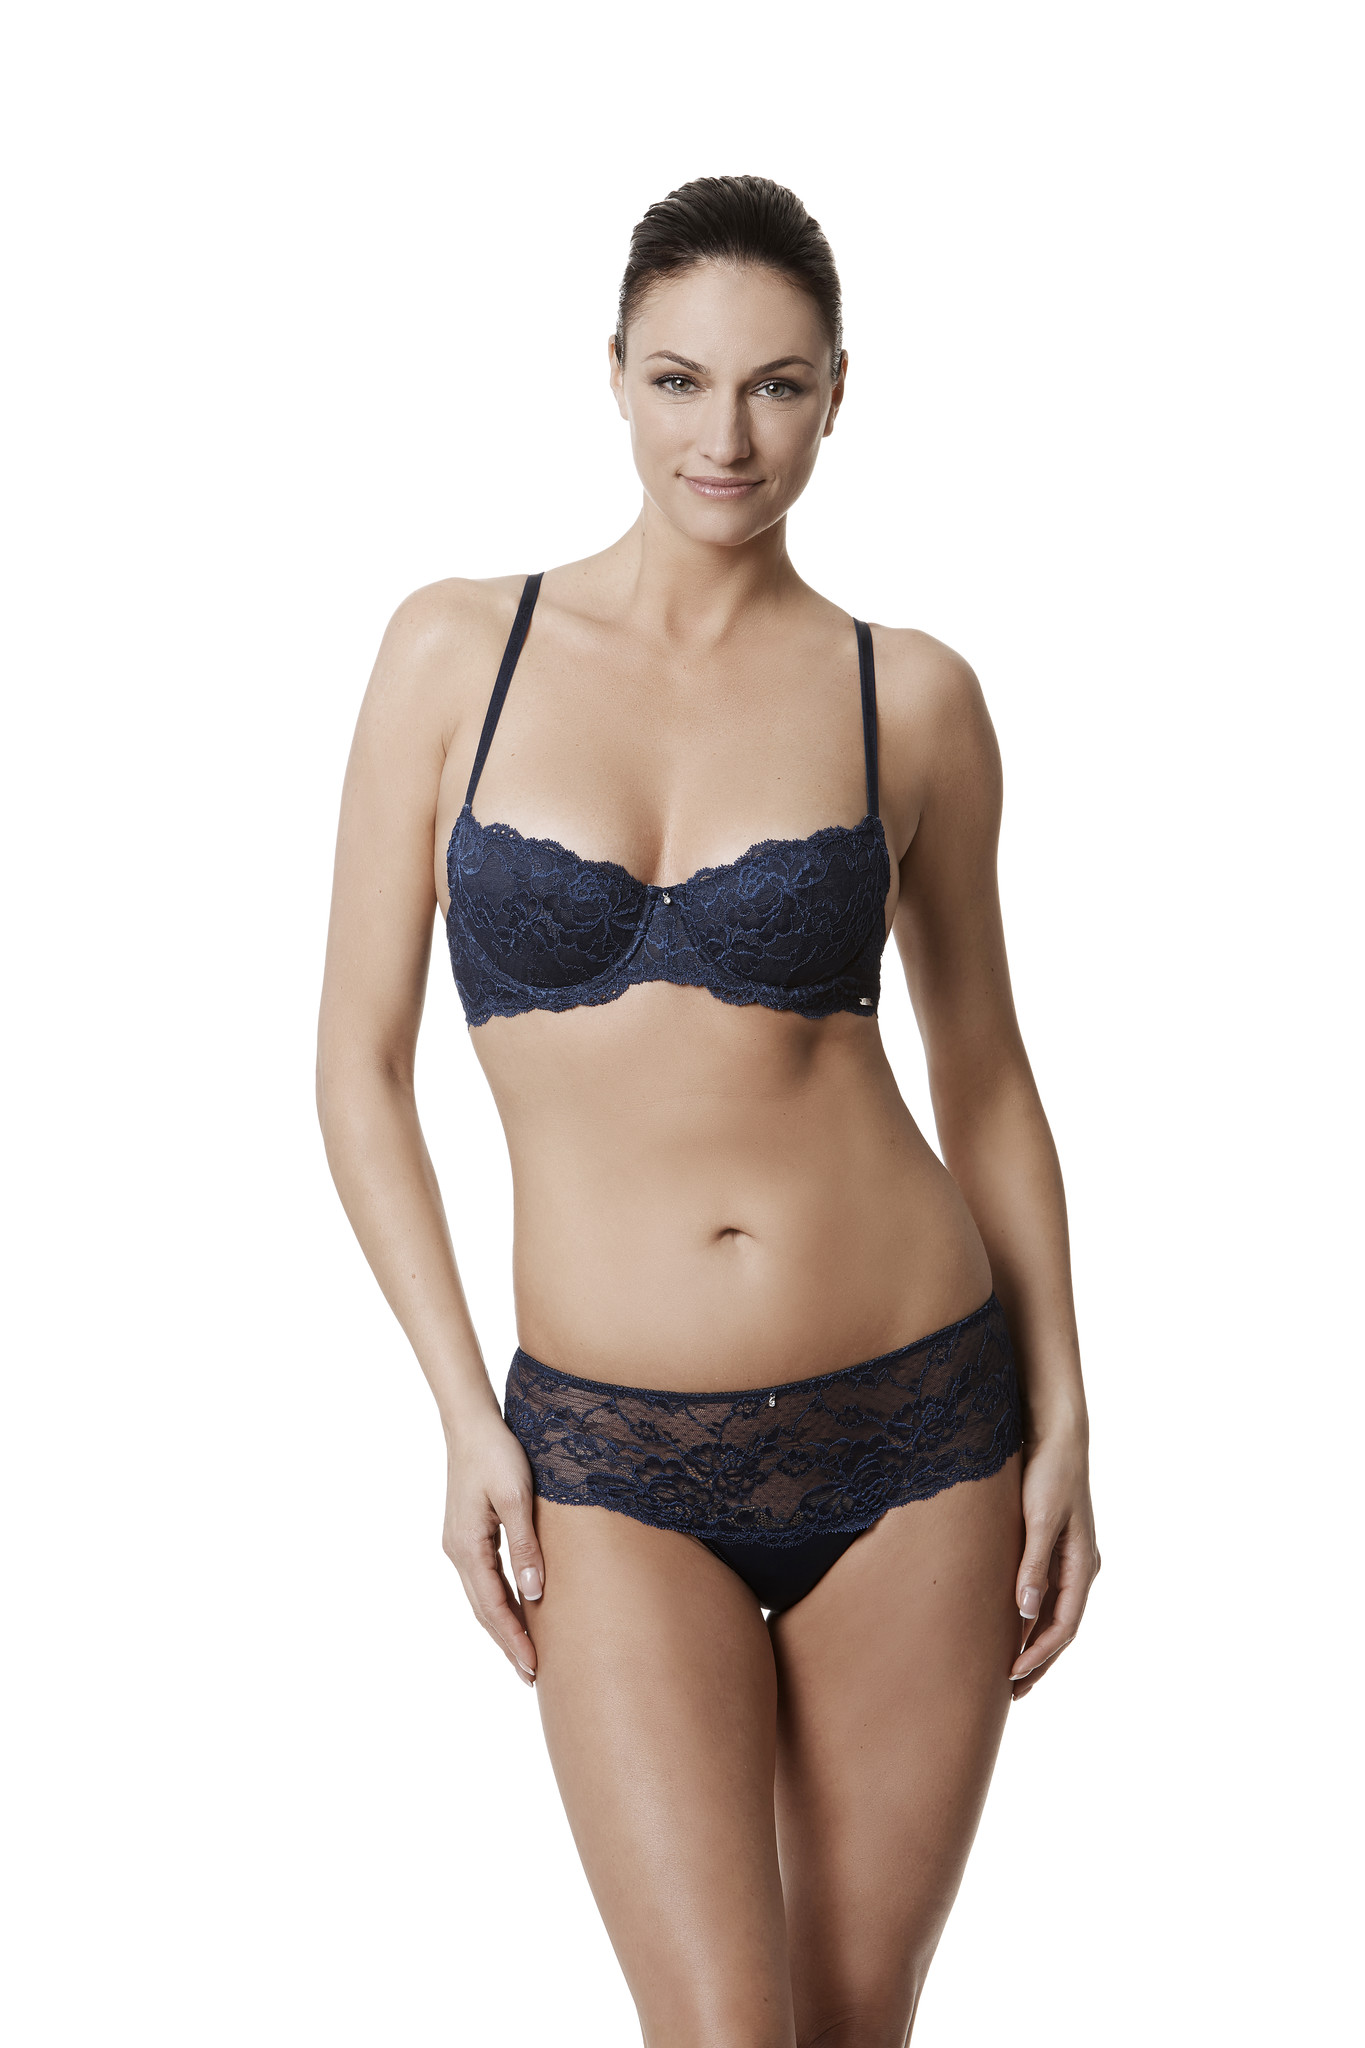 Mistakes You Should Not Make When Combining Neckline Bras